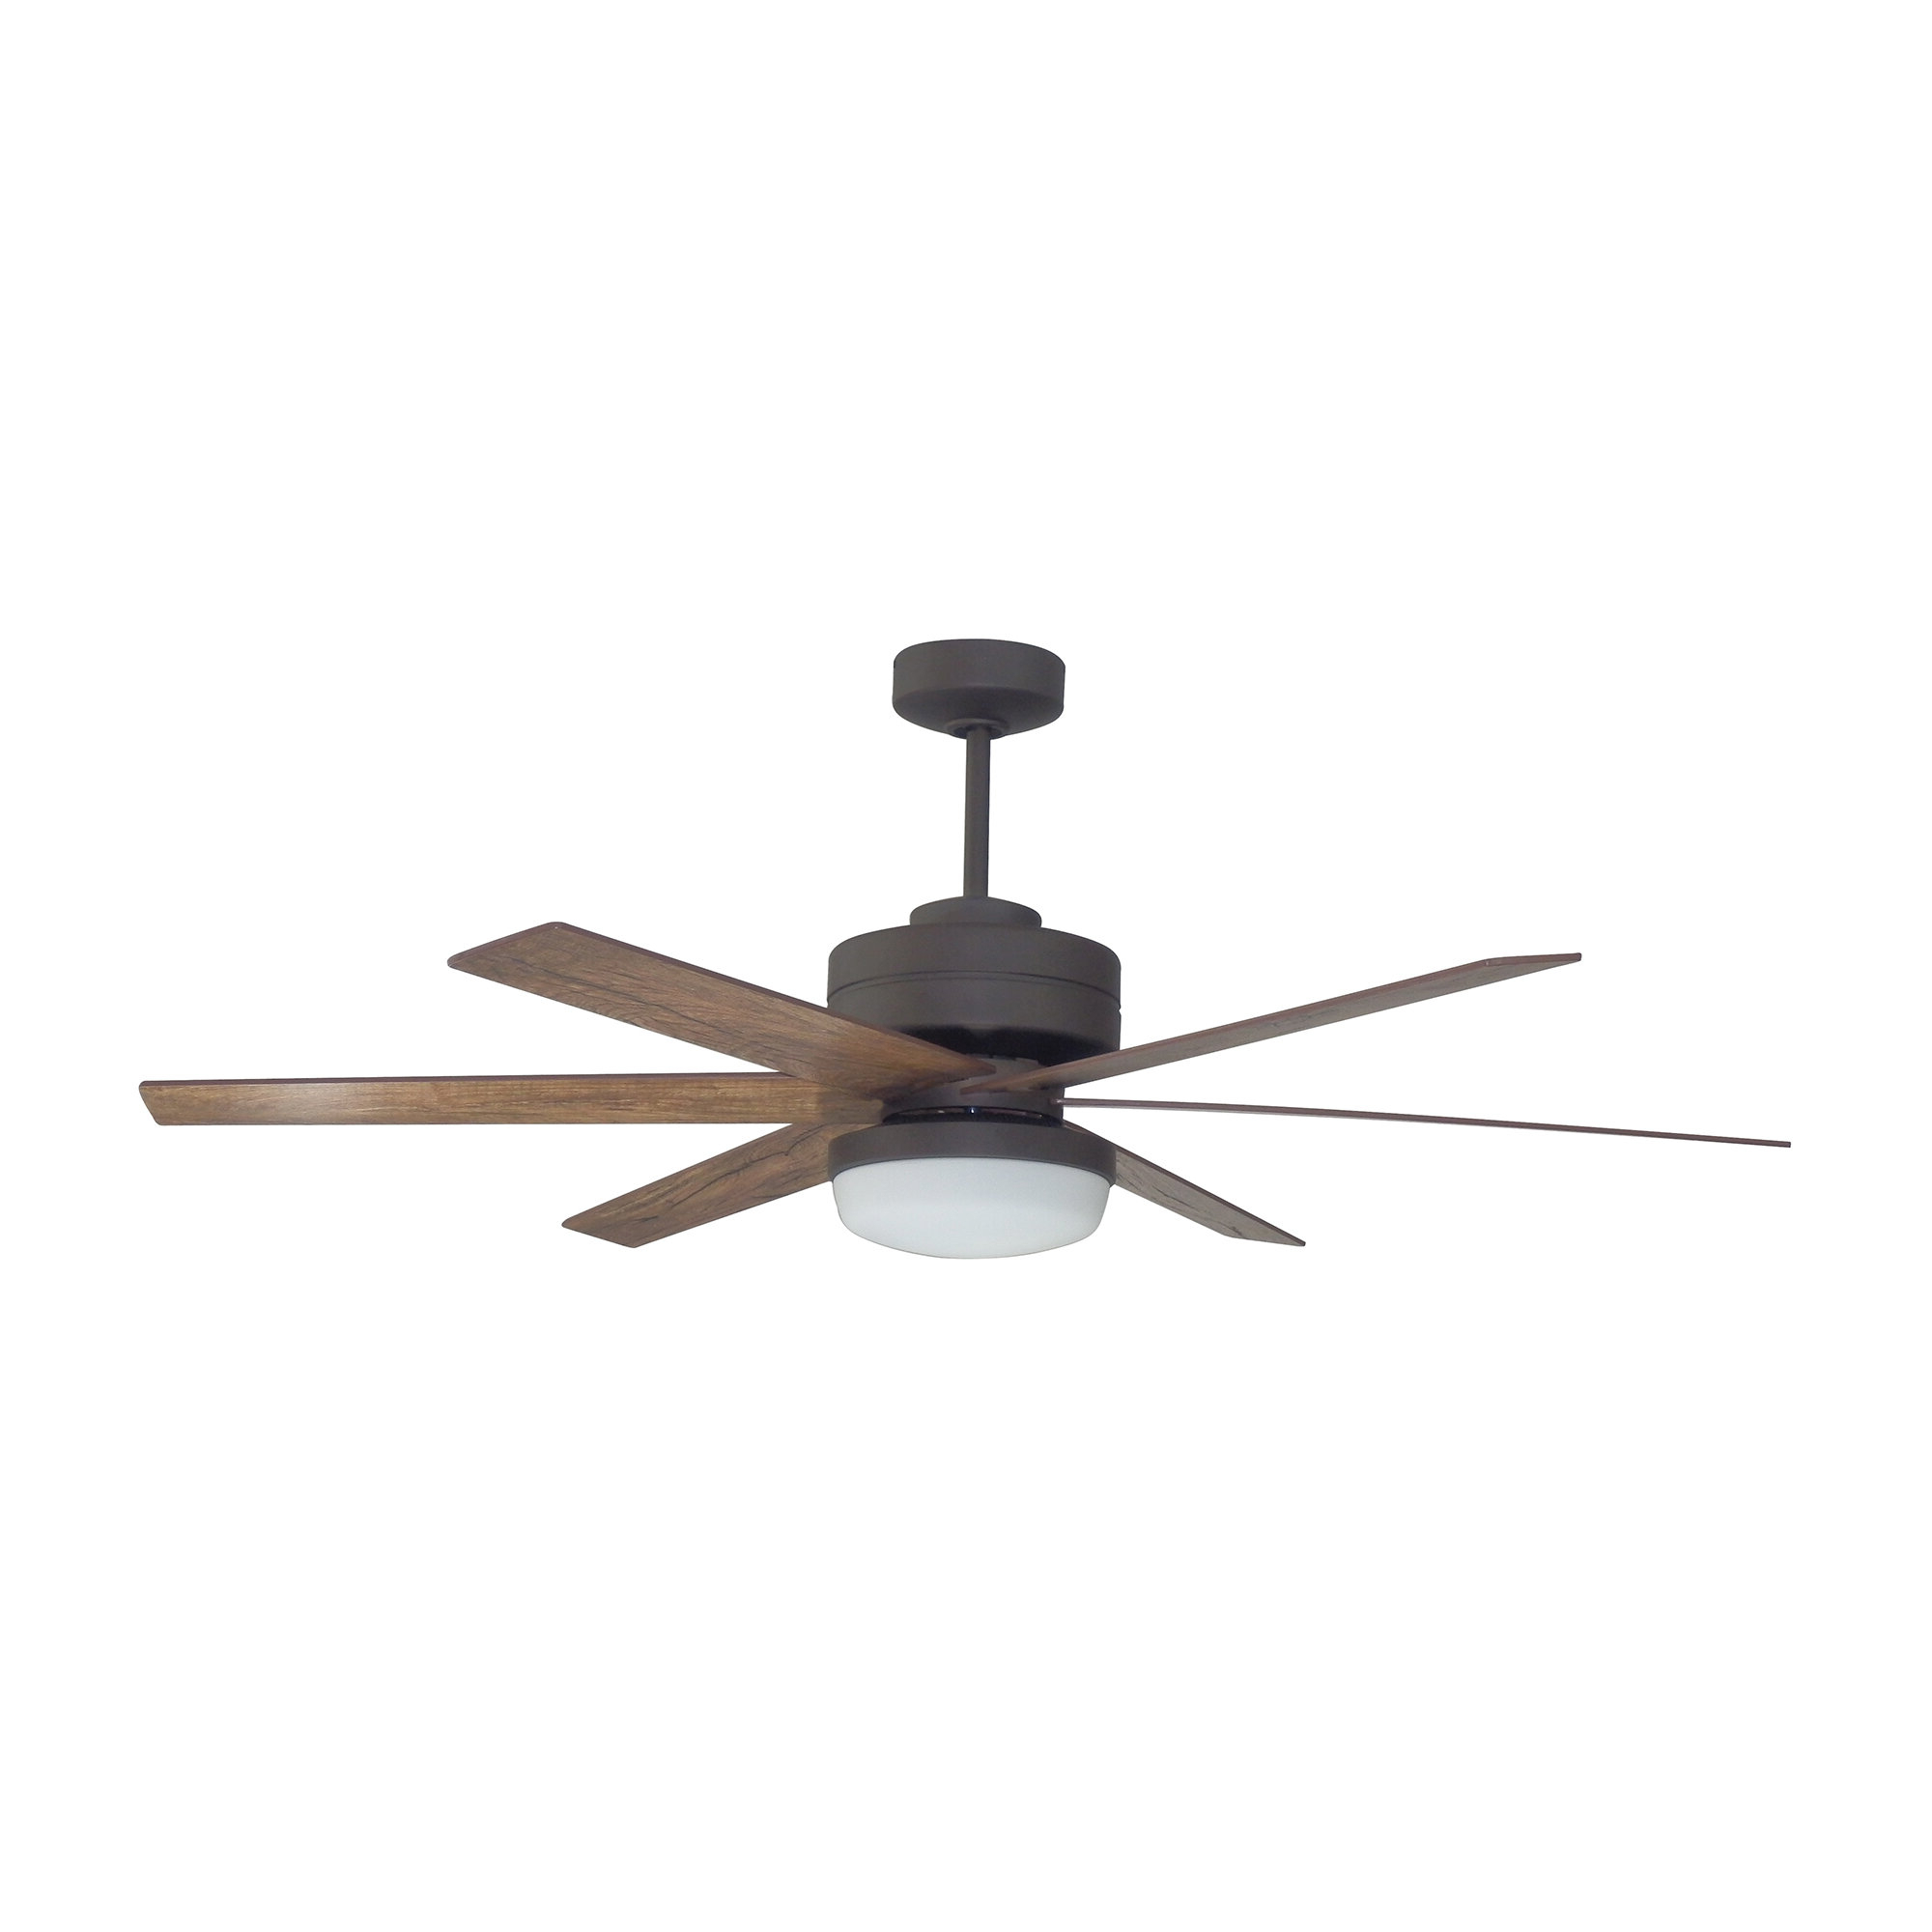 "Well Known Cillian 6 Blade Ceiling Fans Regarding 54"" Brack Dual Mount 6 Blade Ceiling Fan With Remote, Light Kit Included (View 4 of 20)"